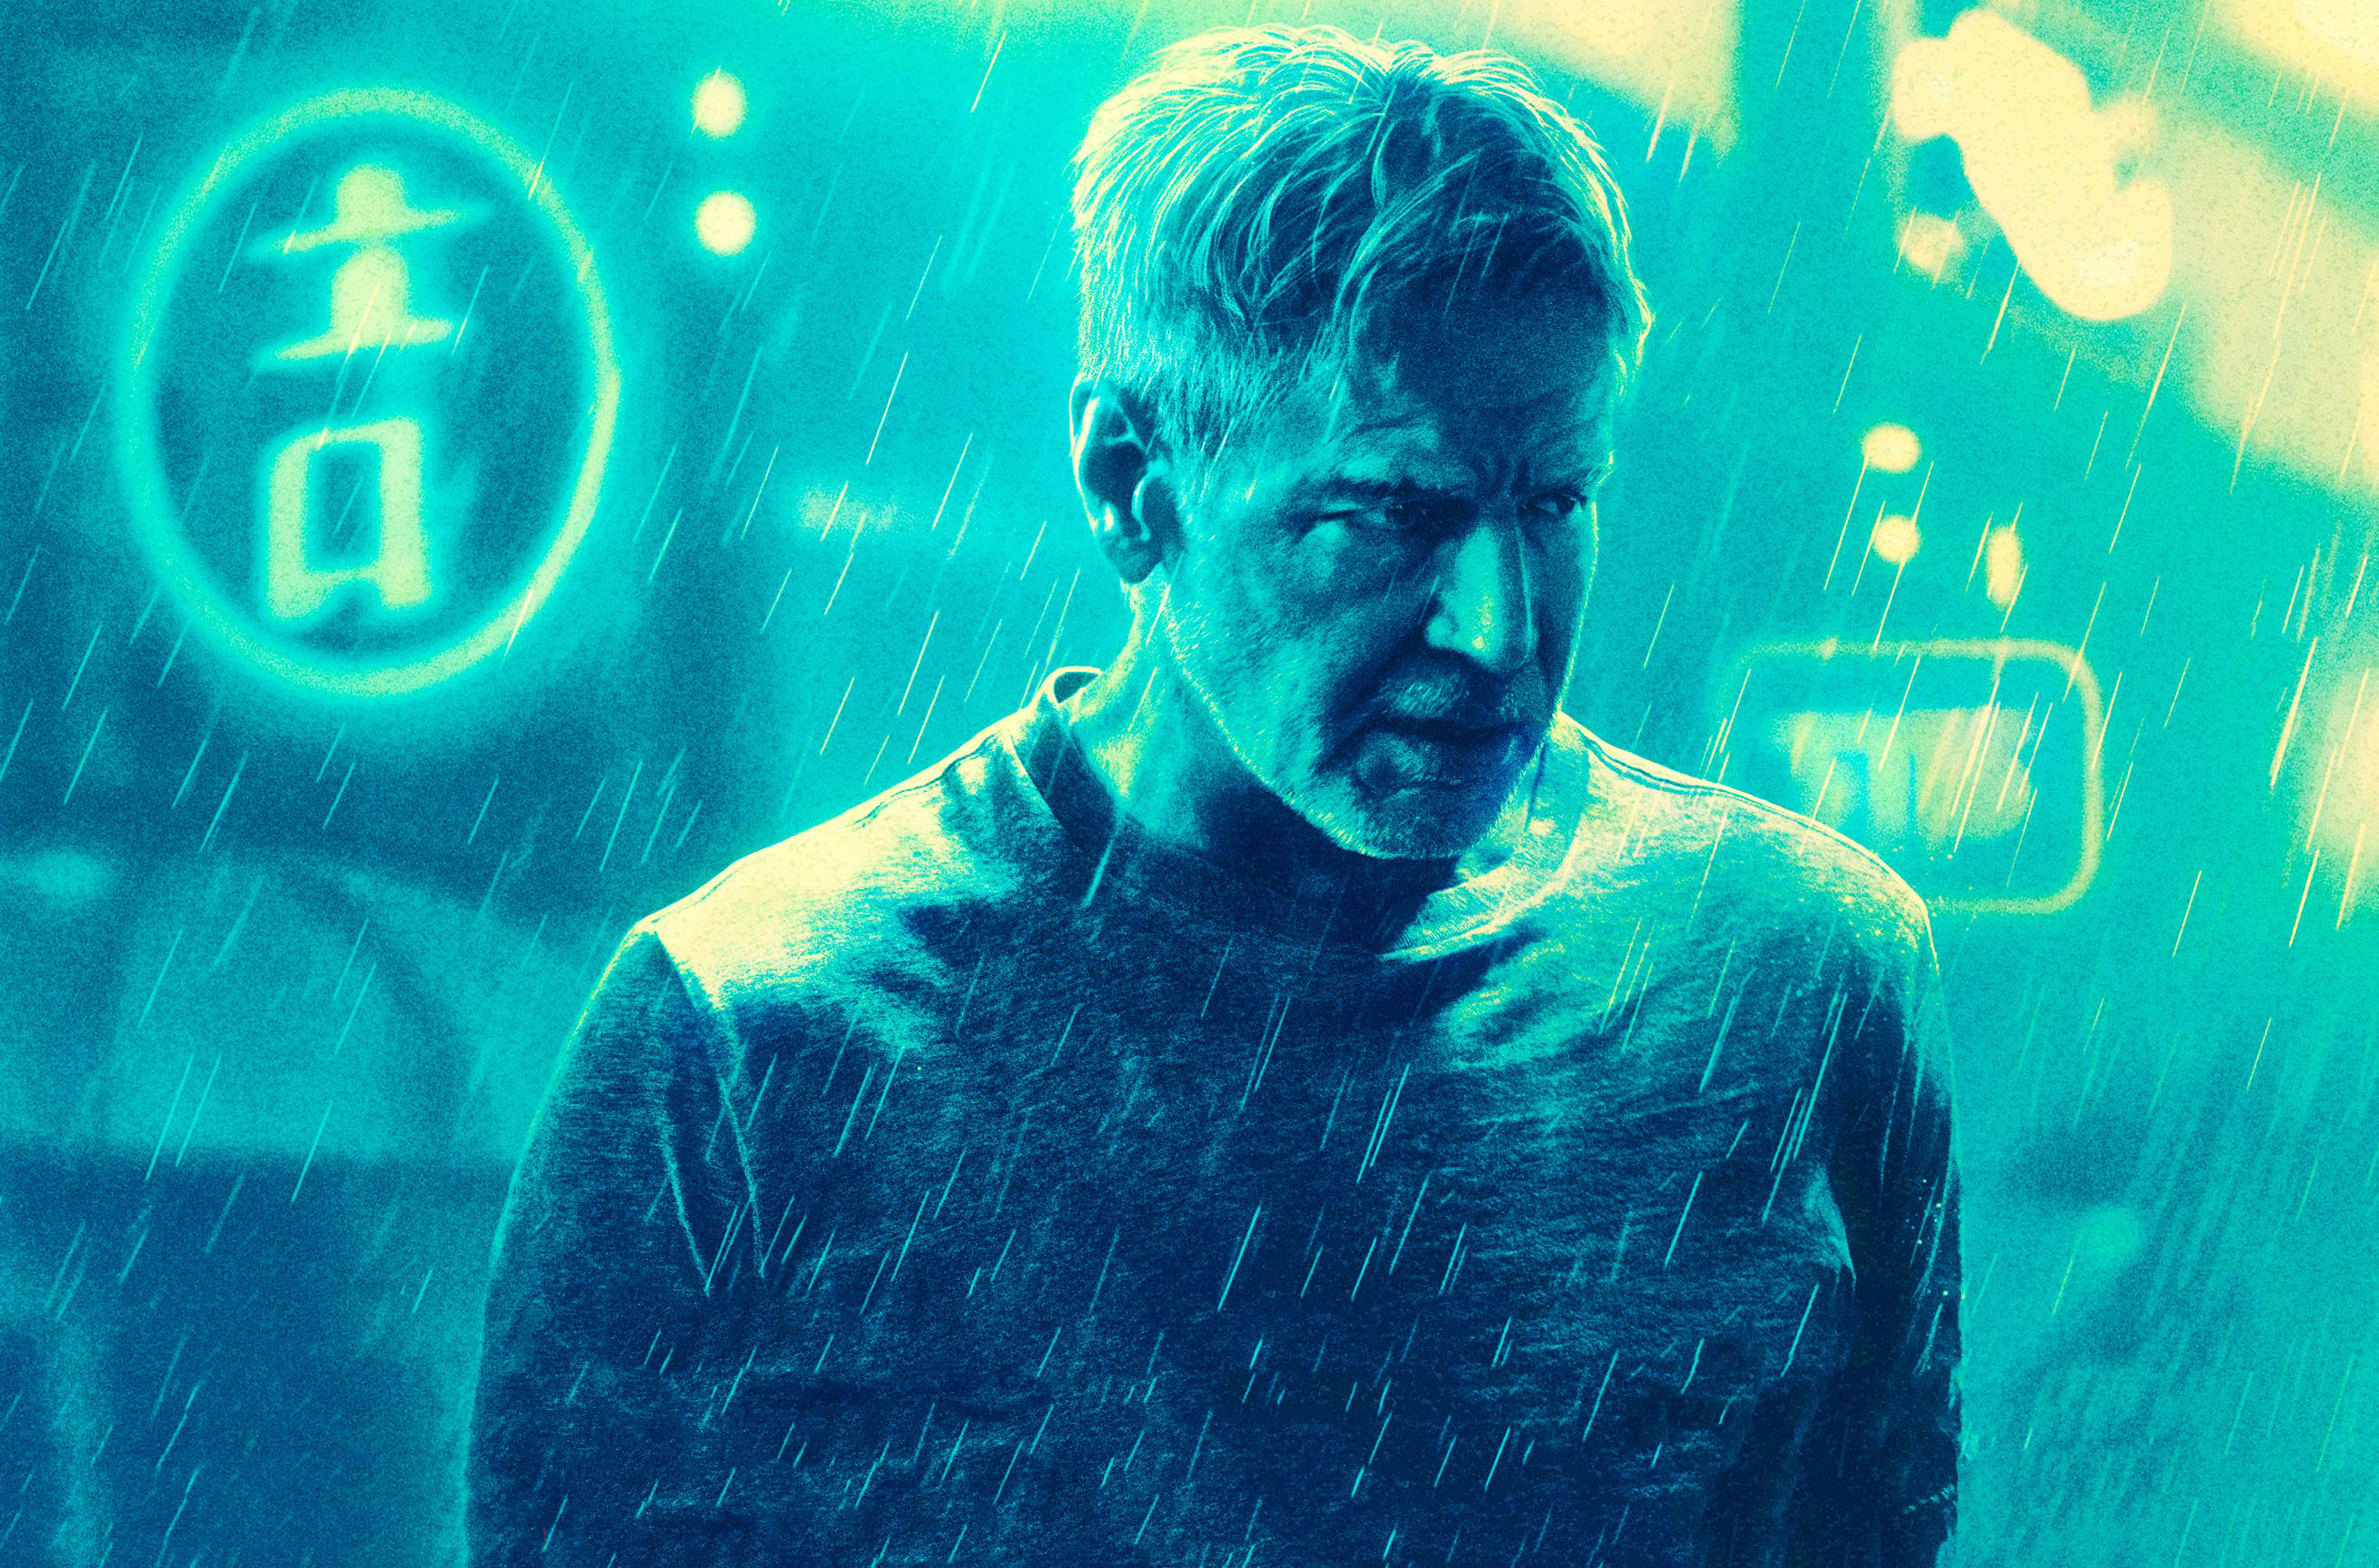 Blade Runner 2049 Wallpapers, Pictures, Images